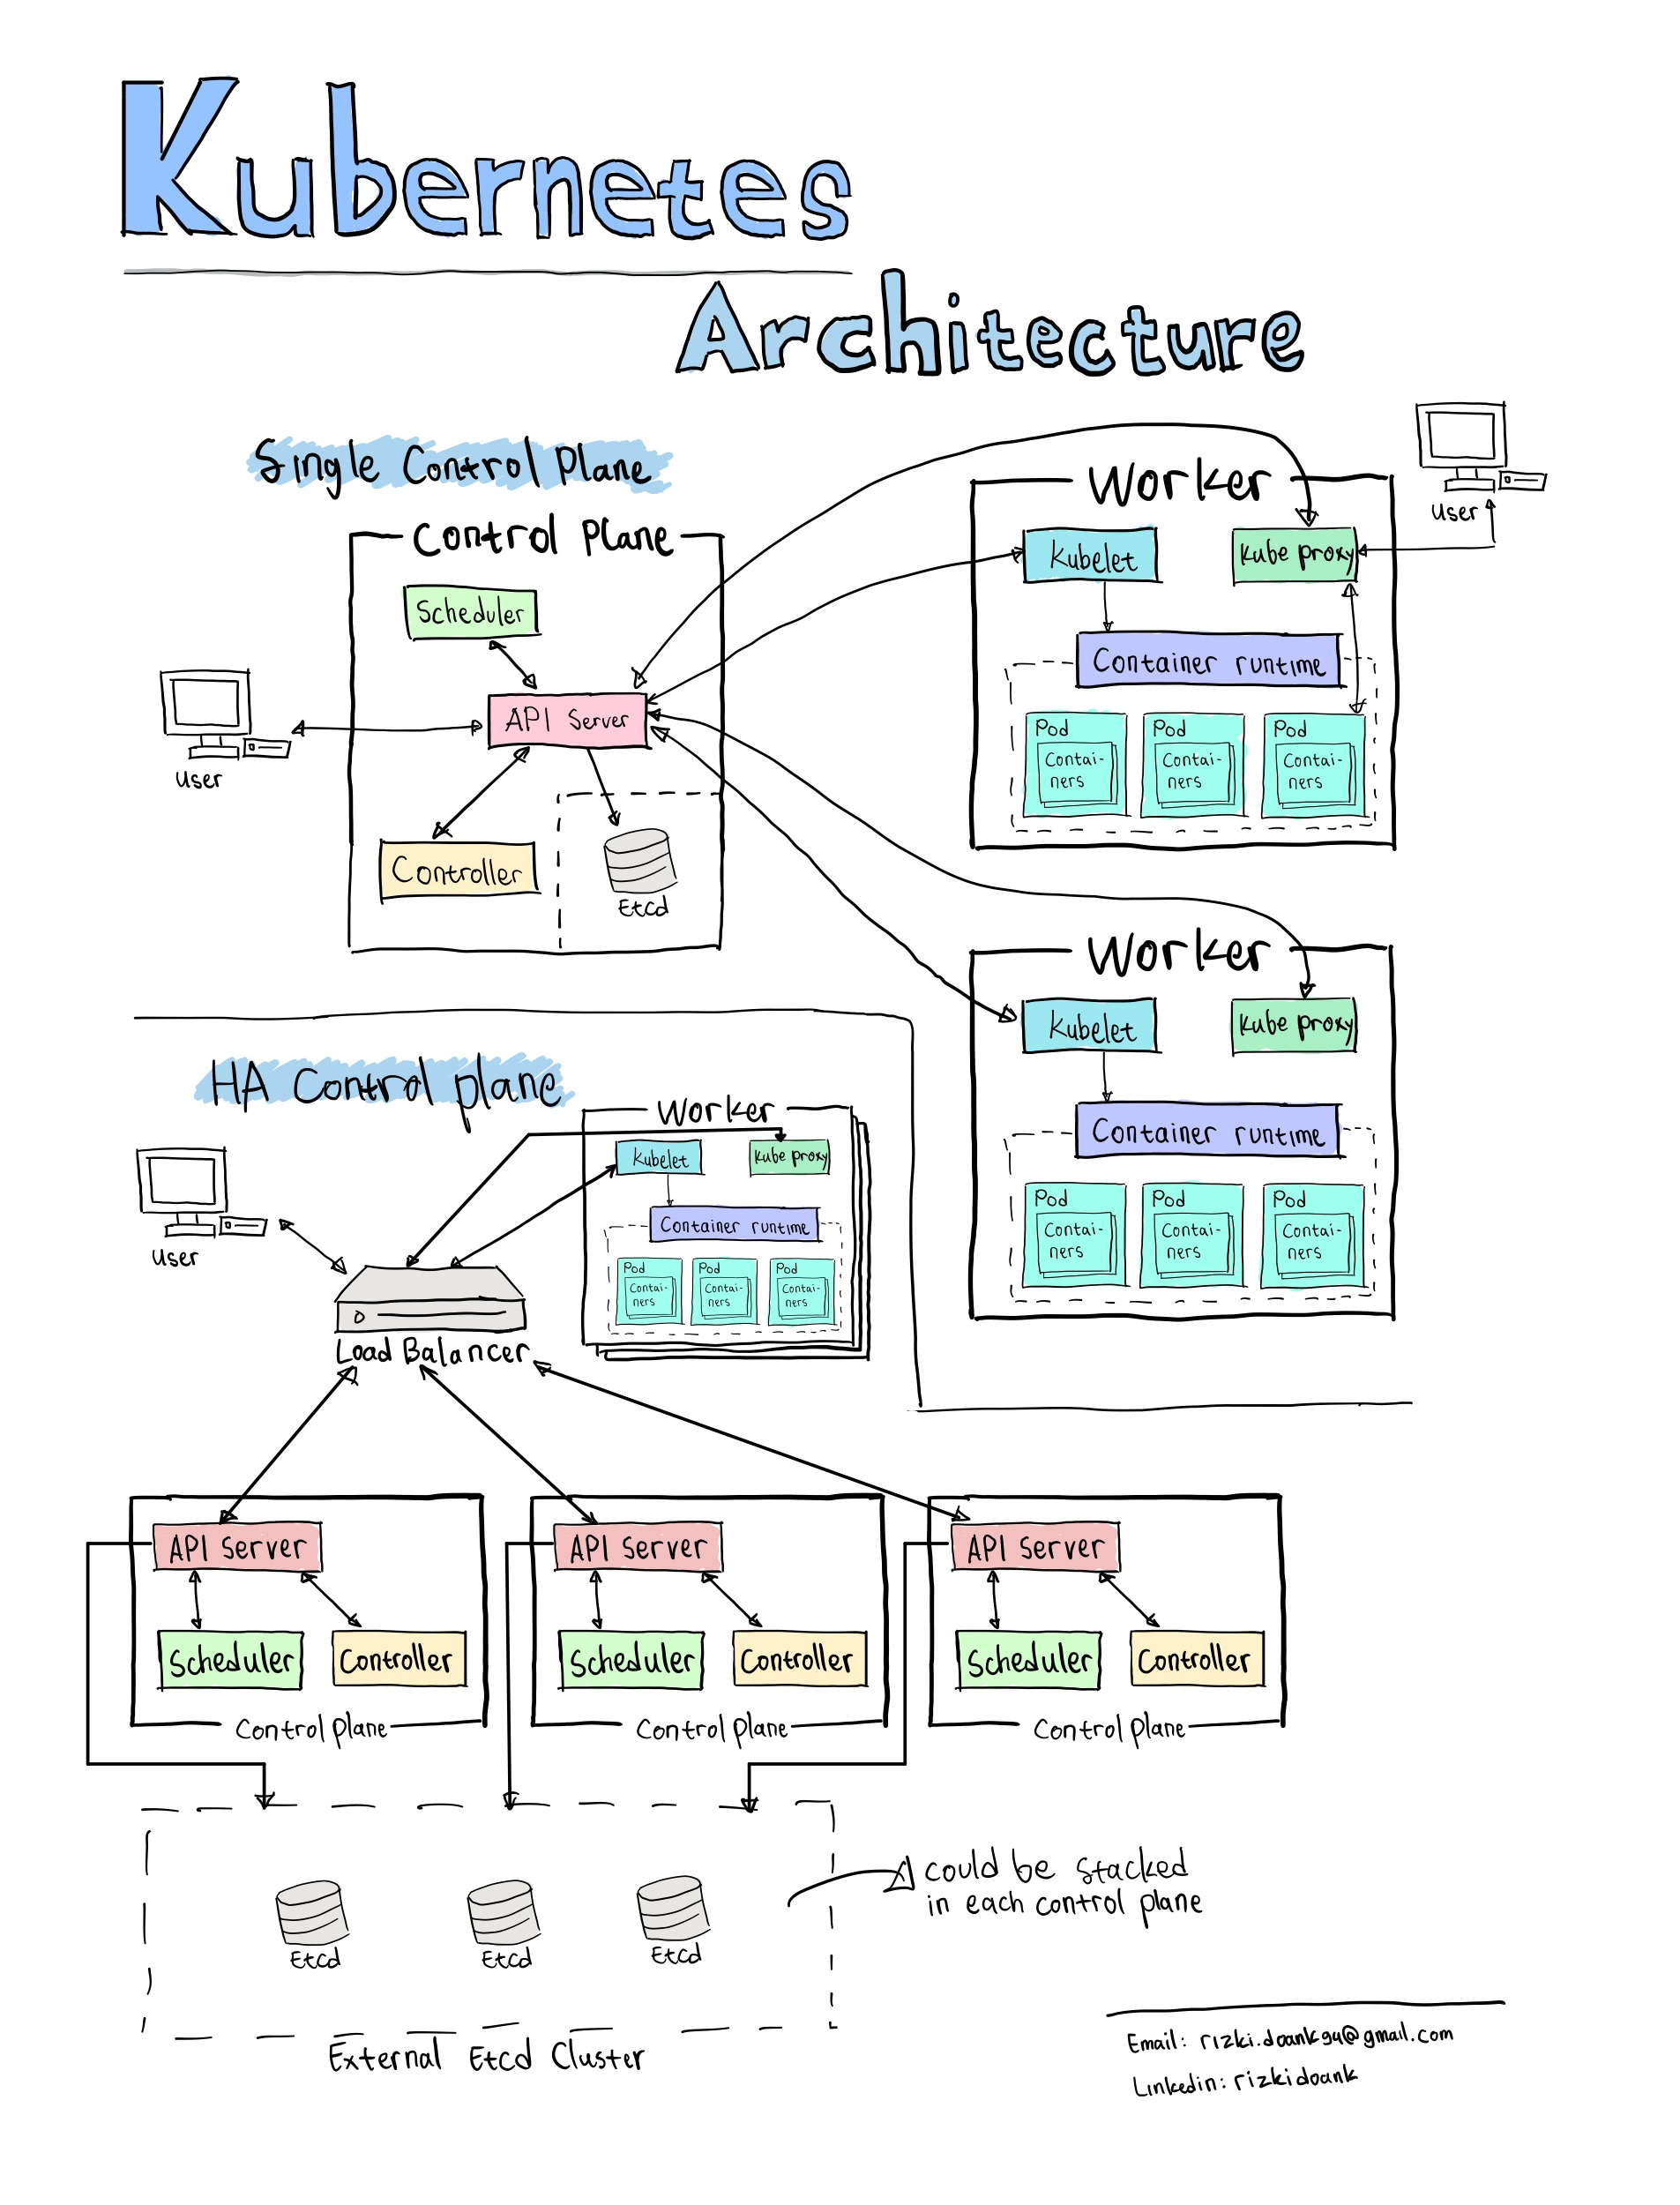 Kubernetes Architecture Overview